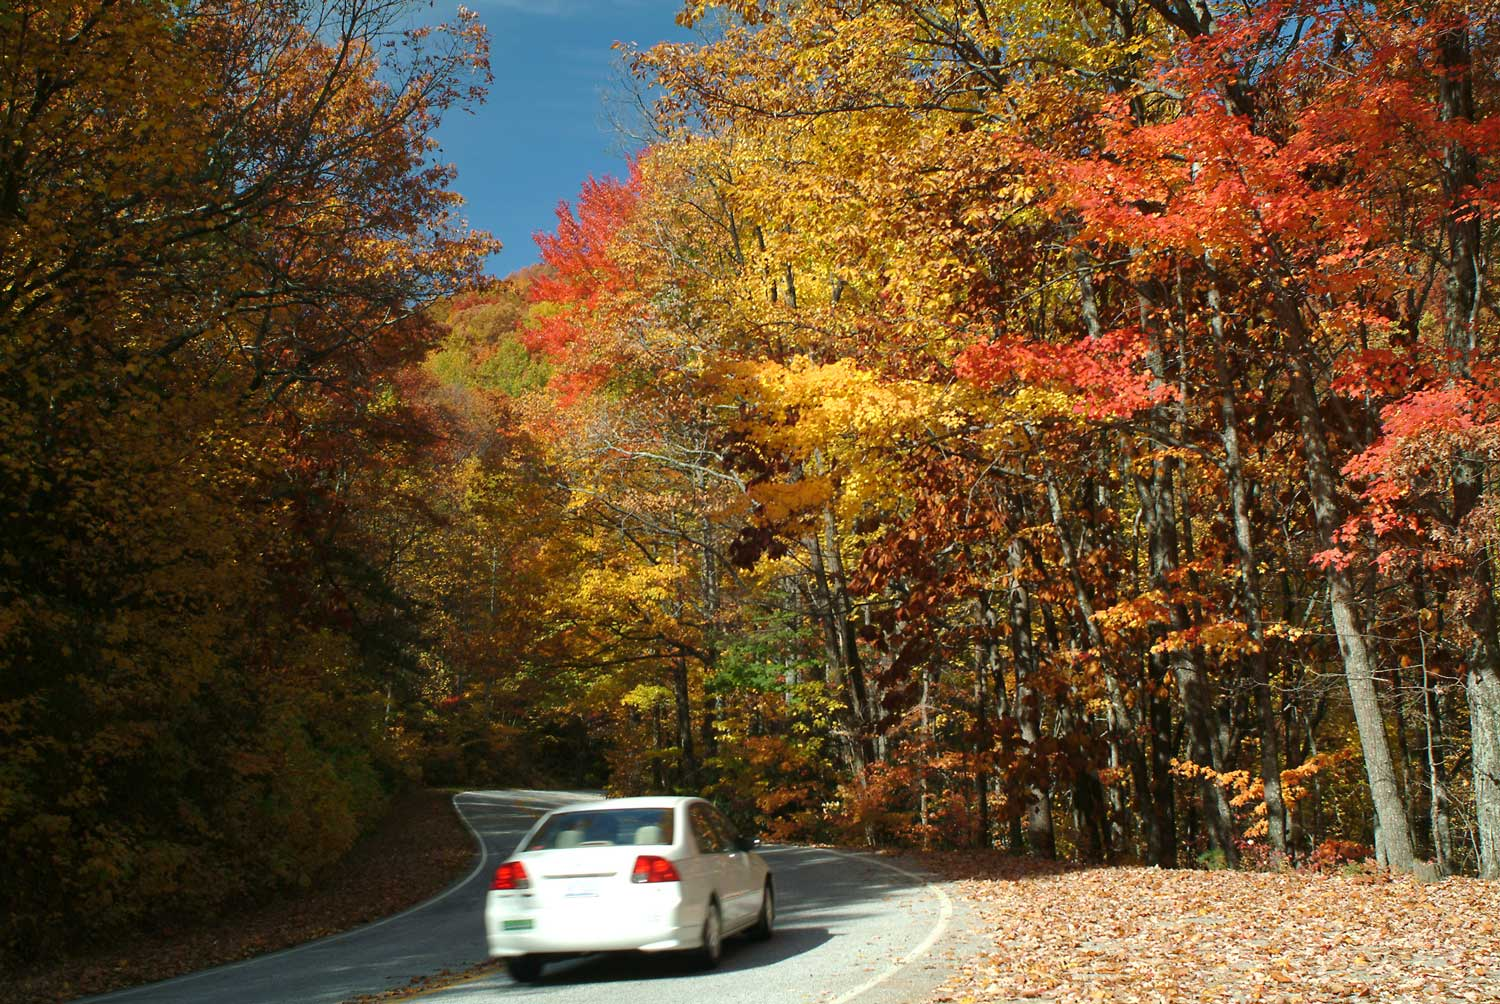 Cherokee Foothills National Scenic Byway